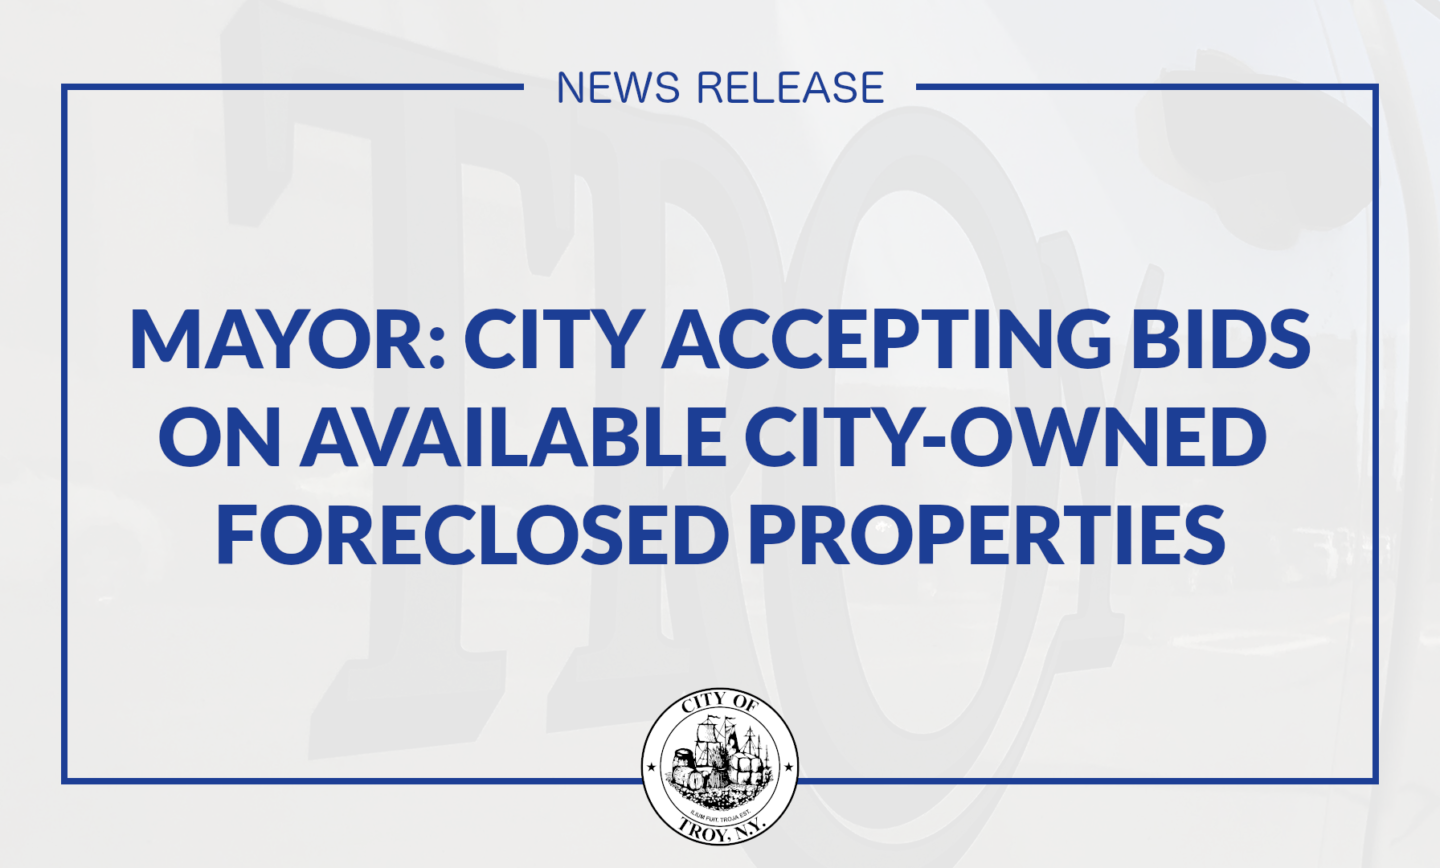 Mayor Madden: City Accepting Bids on Available City-Owned Foreclosed Properties